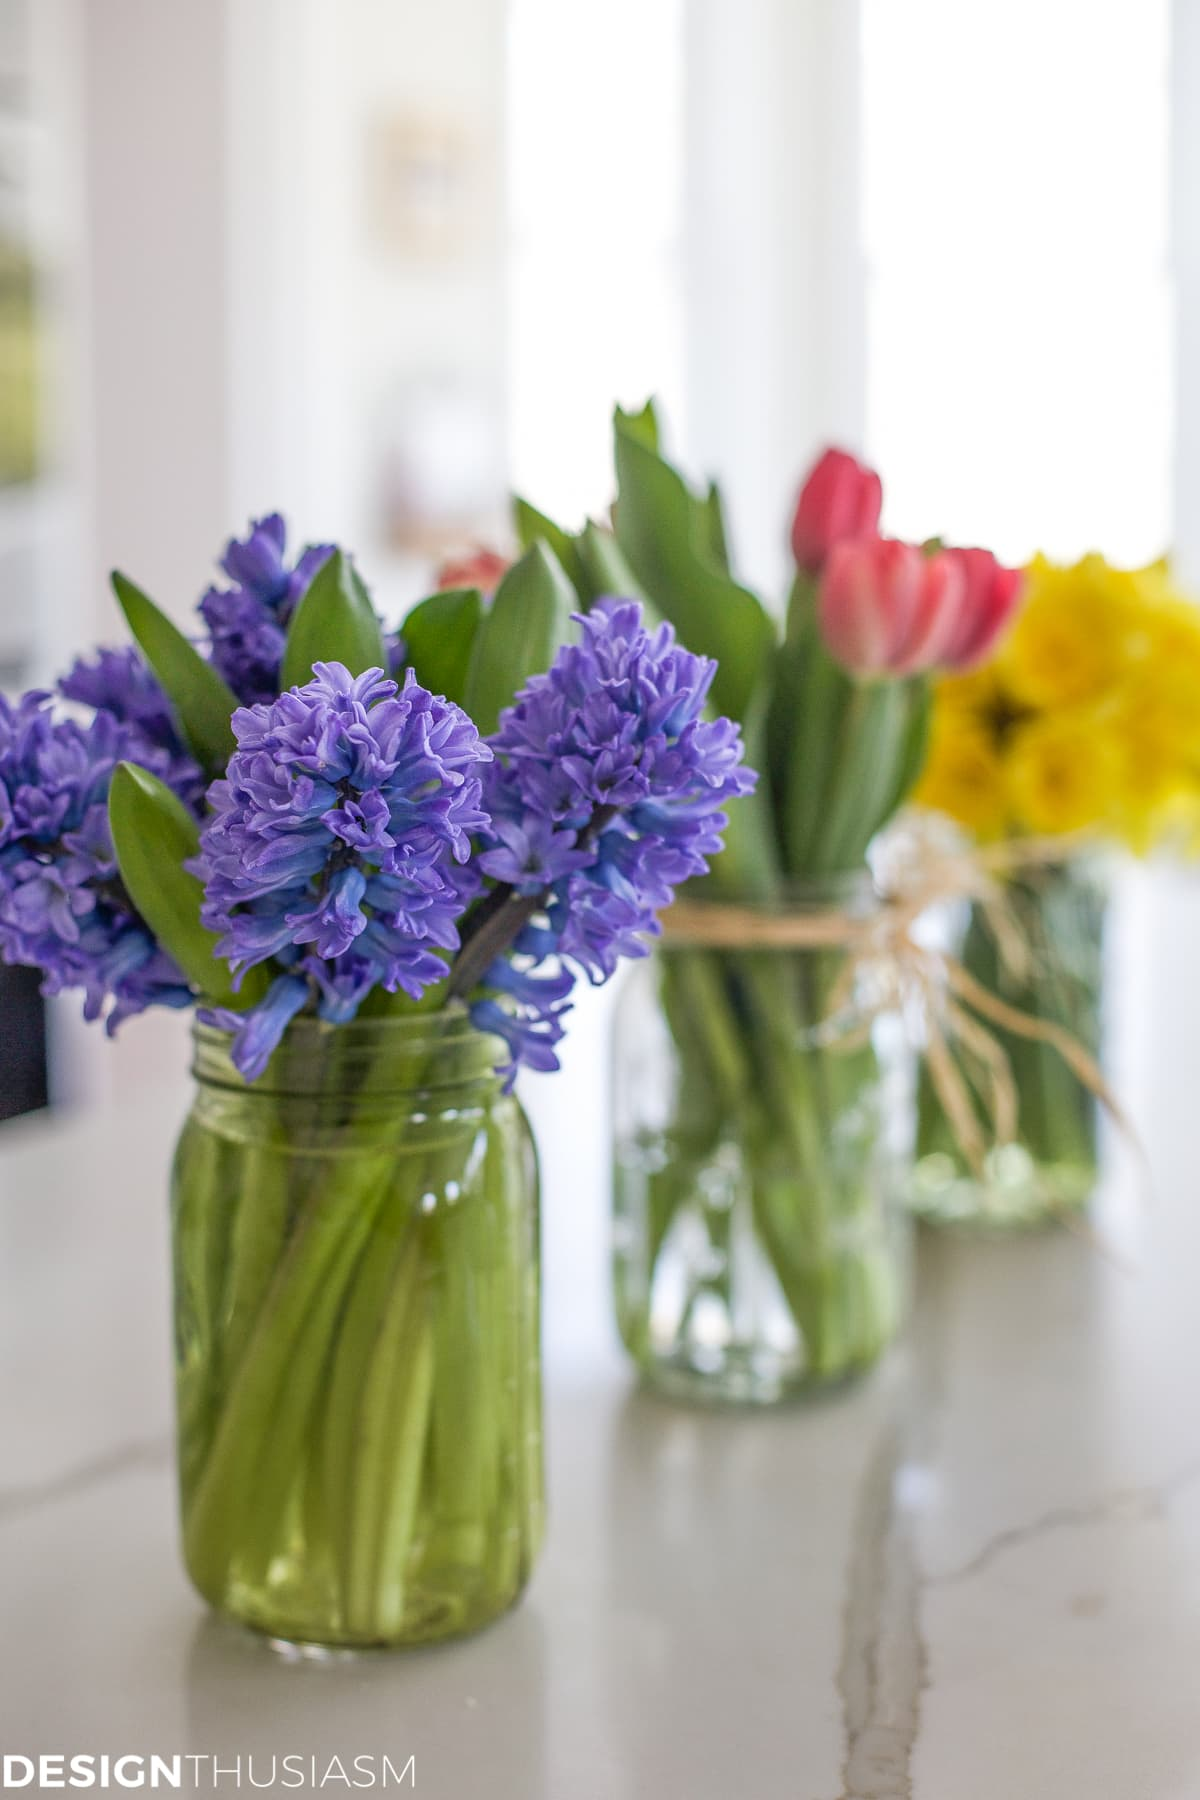 Spring Centerpieces Using Mason Jars : Using mason jar centerpieces to add color your table